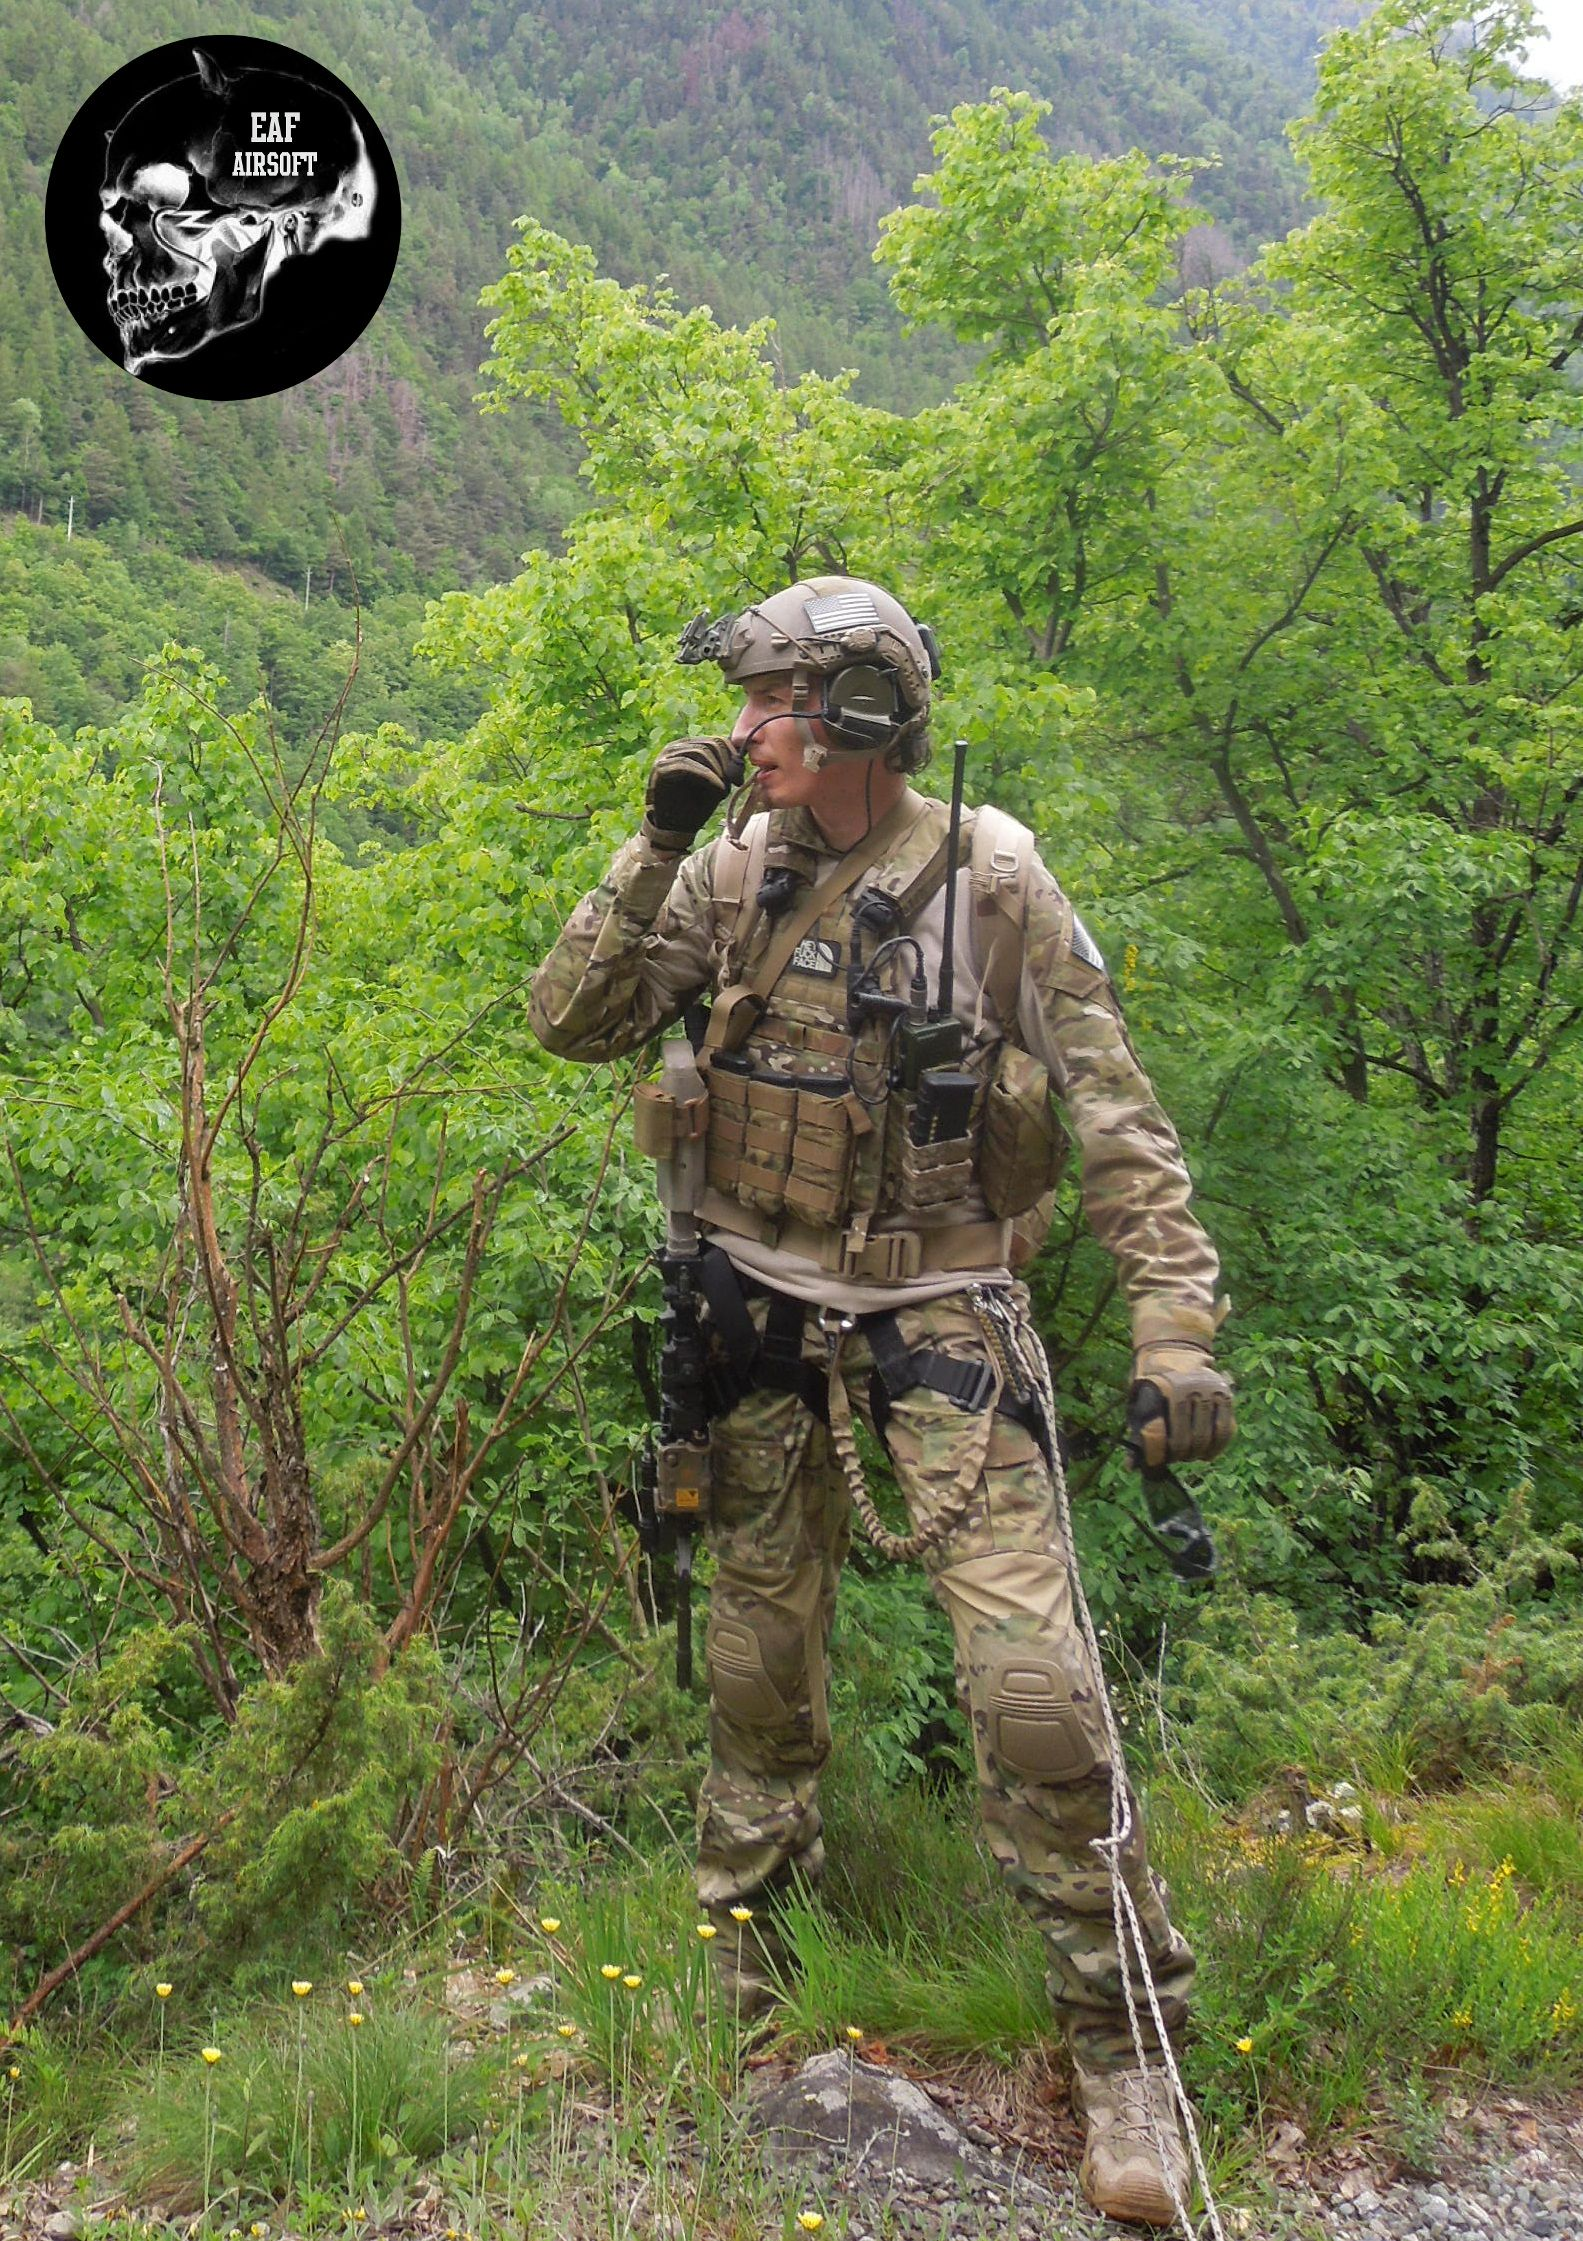 AFSOC PJ AIRSOFT LOADOUT Pinterest Pj, Airsoft and